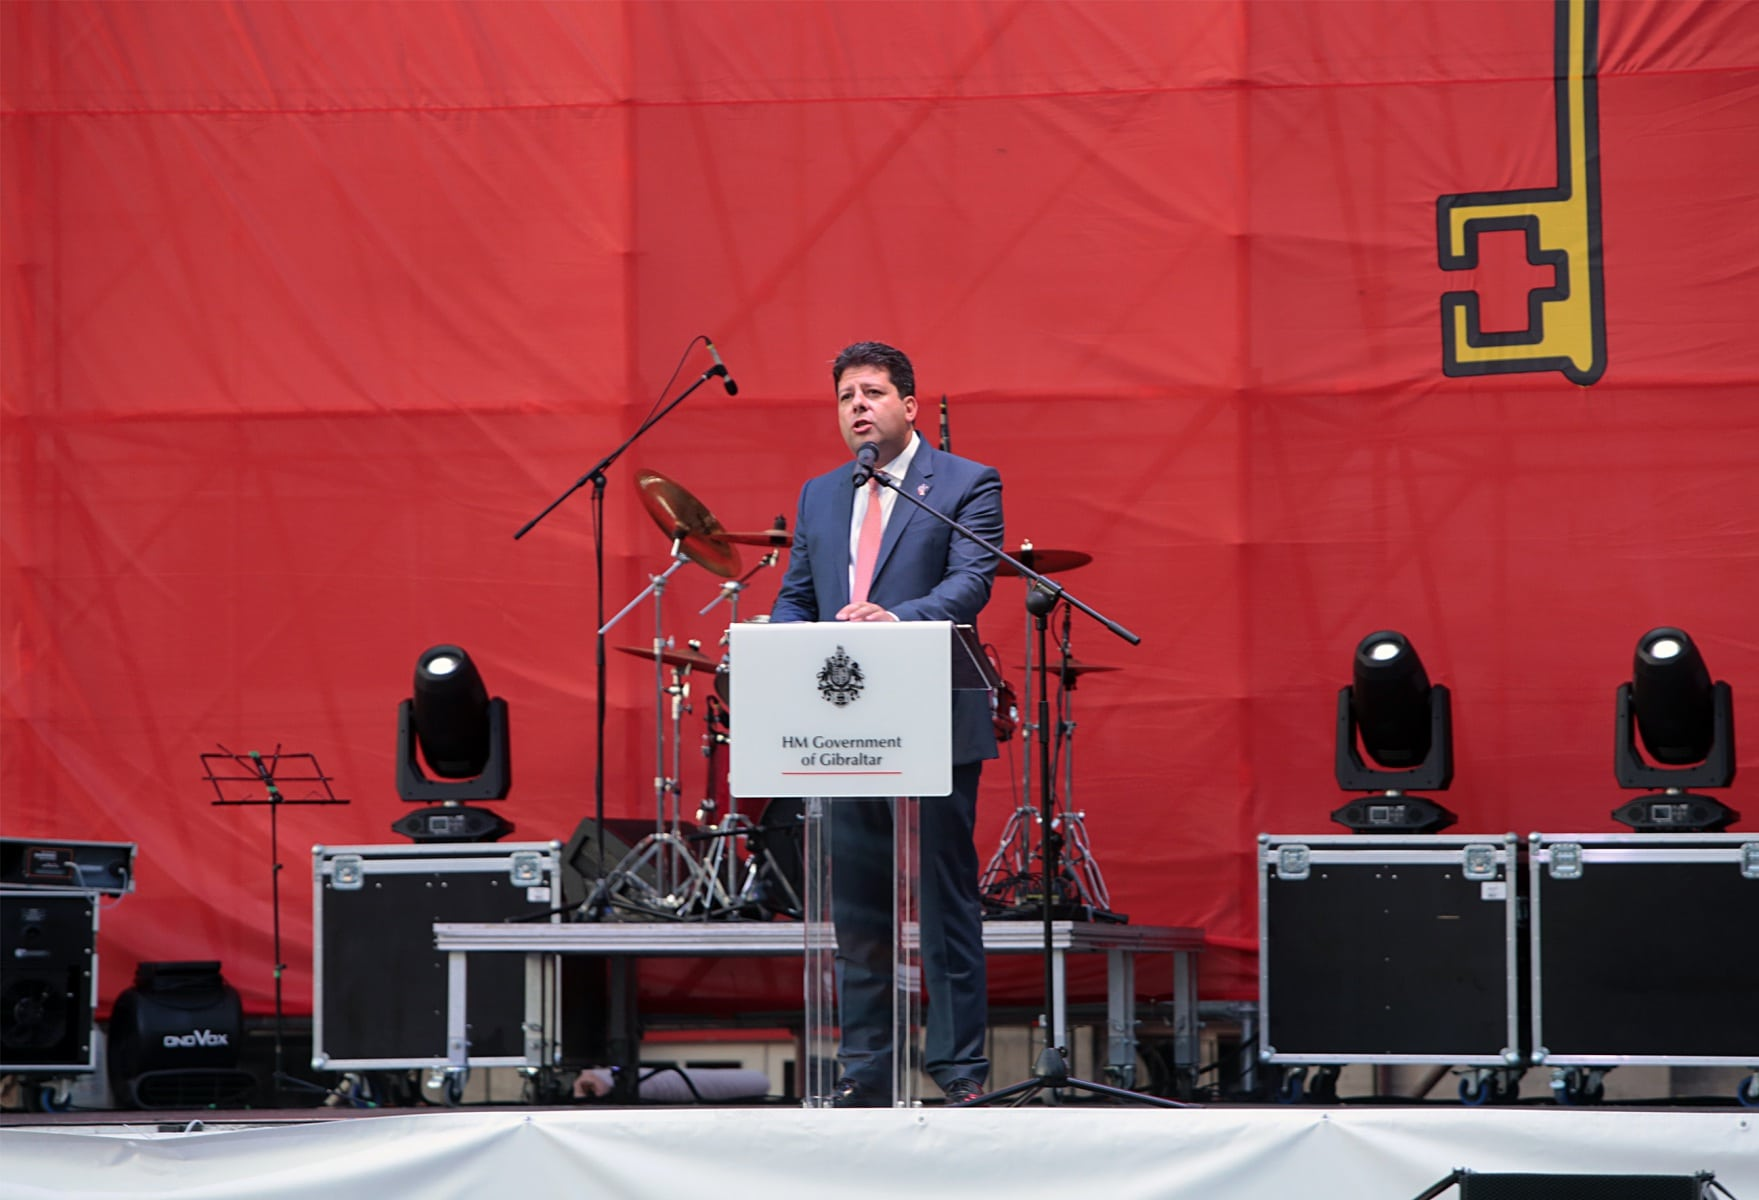 10-sep-2017-national-day-de-gibraltar_37026149991_o